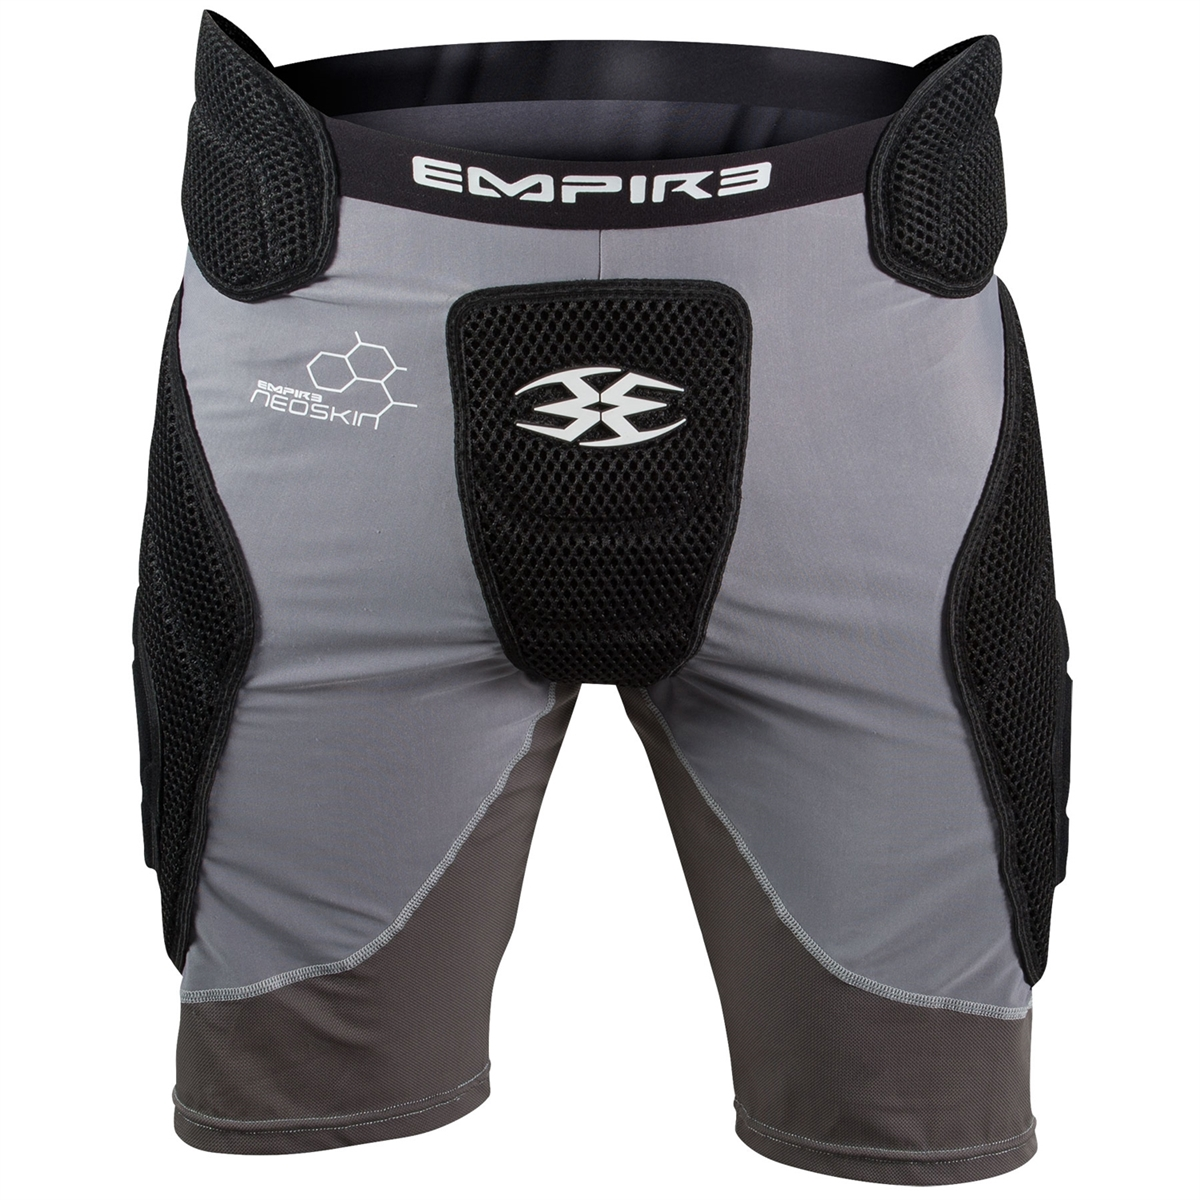 Empire Paintball Neoskin Slider Shorts - Black/Grey - Small